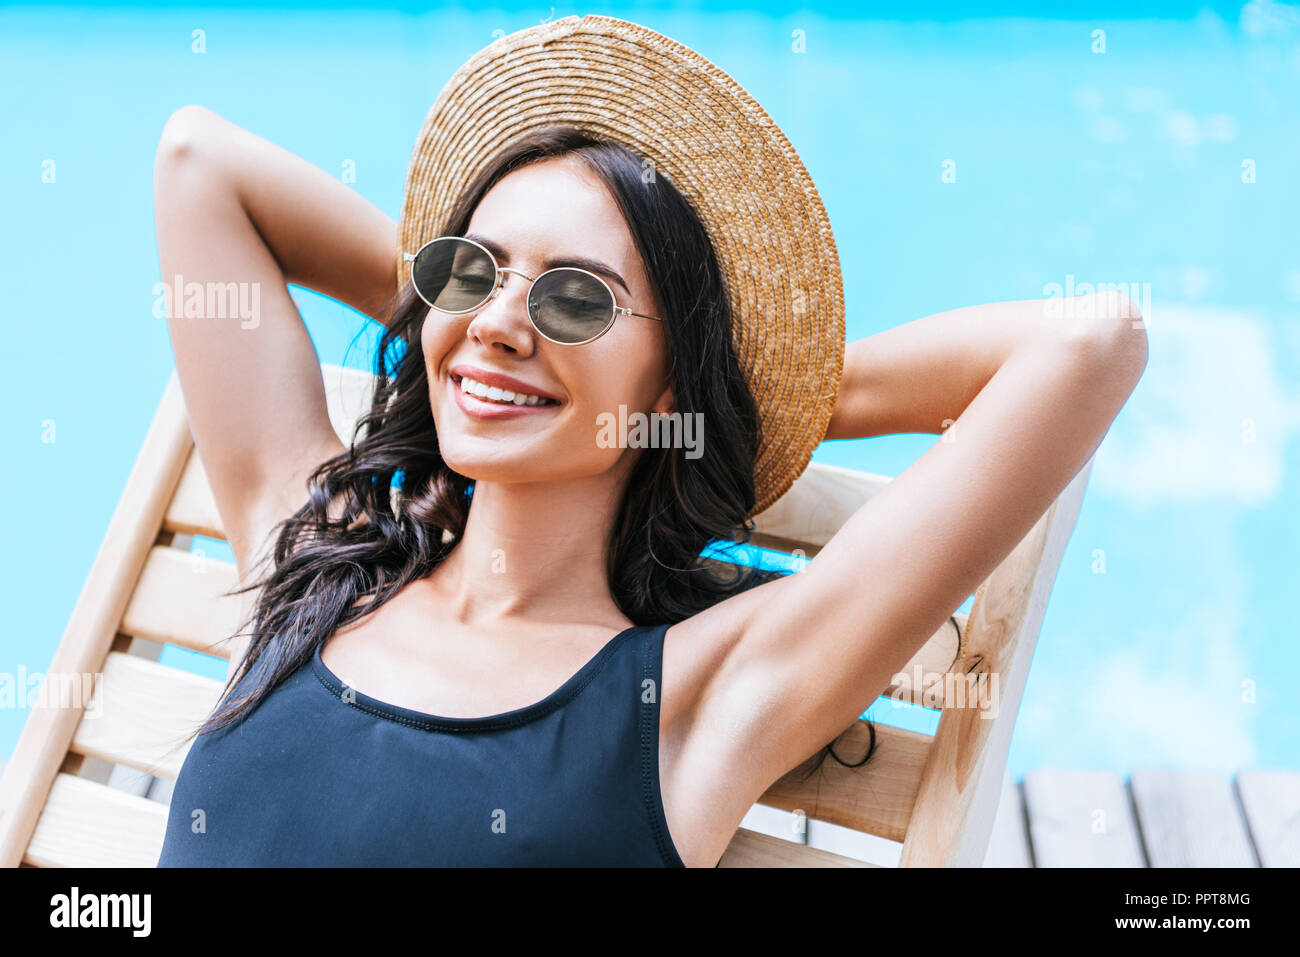 beautiful young brunette woman in swimsuit, straw hat and sunglasses resting with hands behind head at poolside - Stock Image